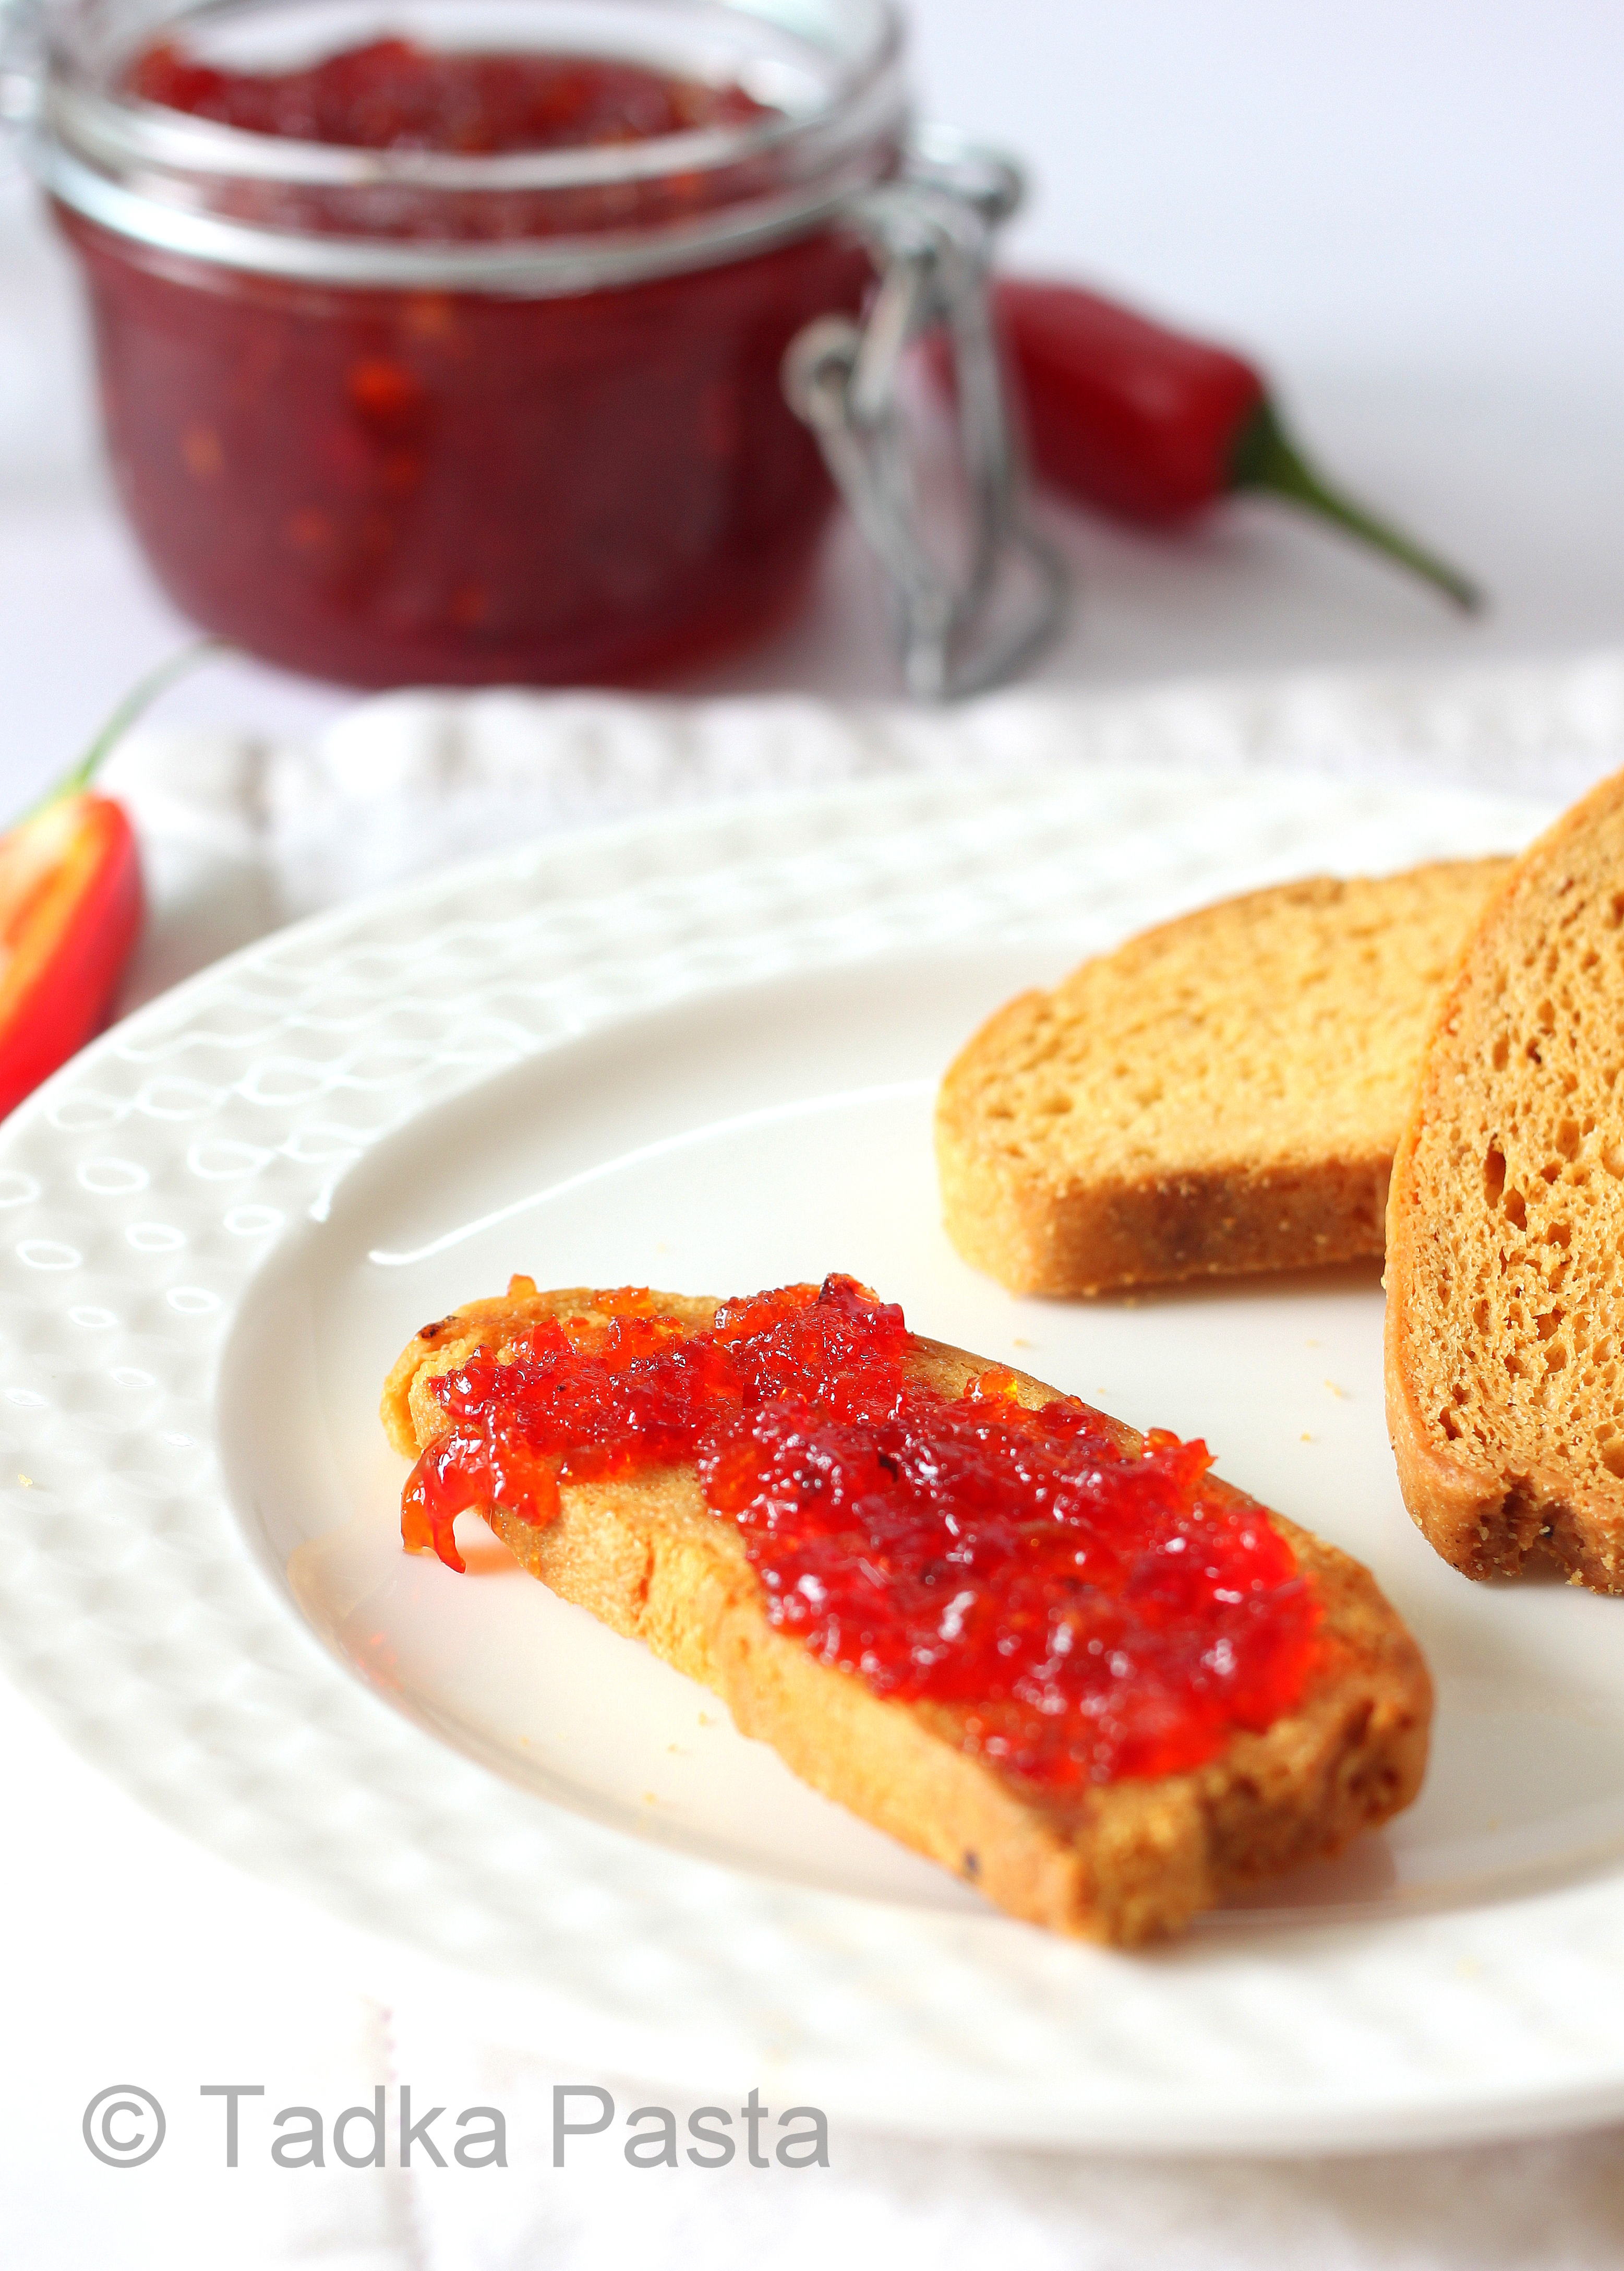 how to make jelly without pectin